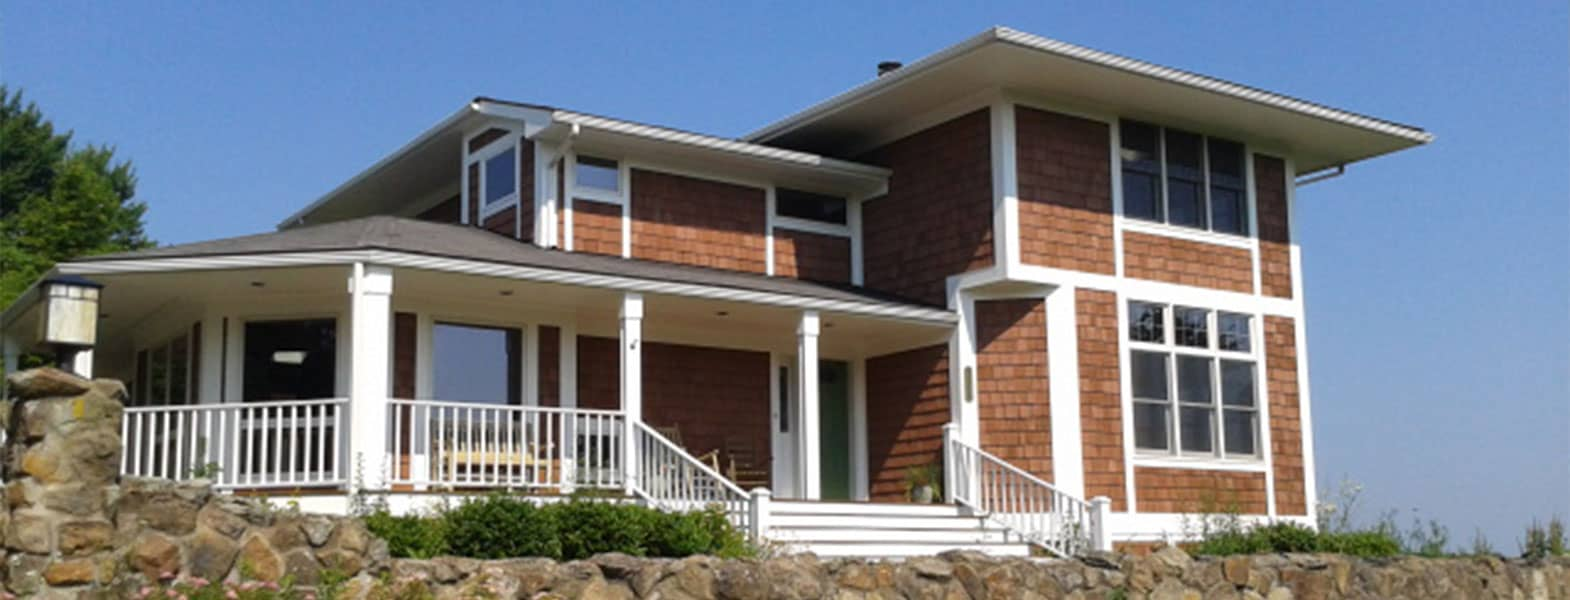 Massillon Home Builder, Custom Home Builder and Home Remodeling Contractor